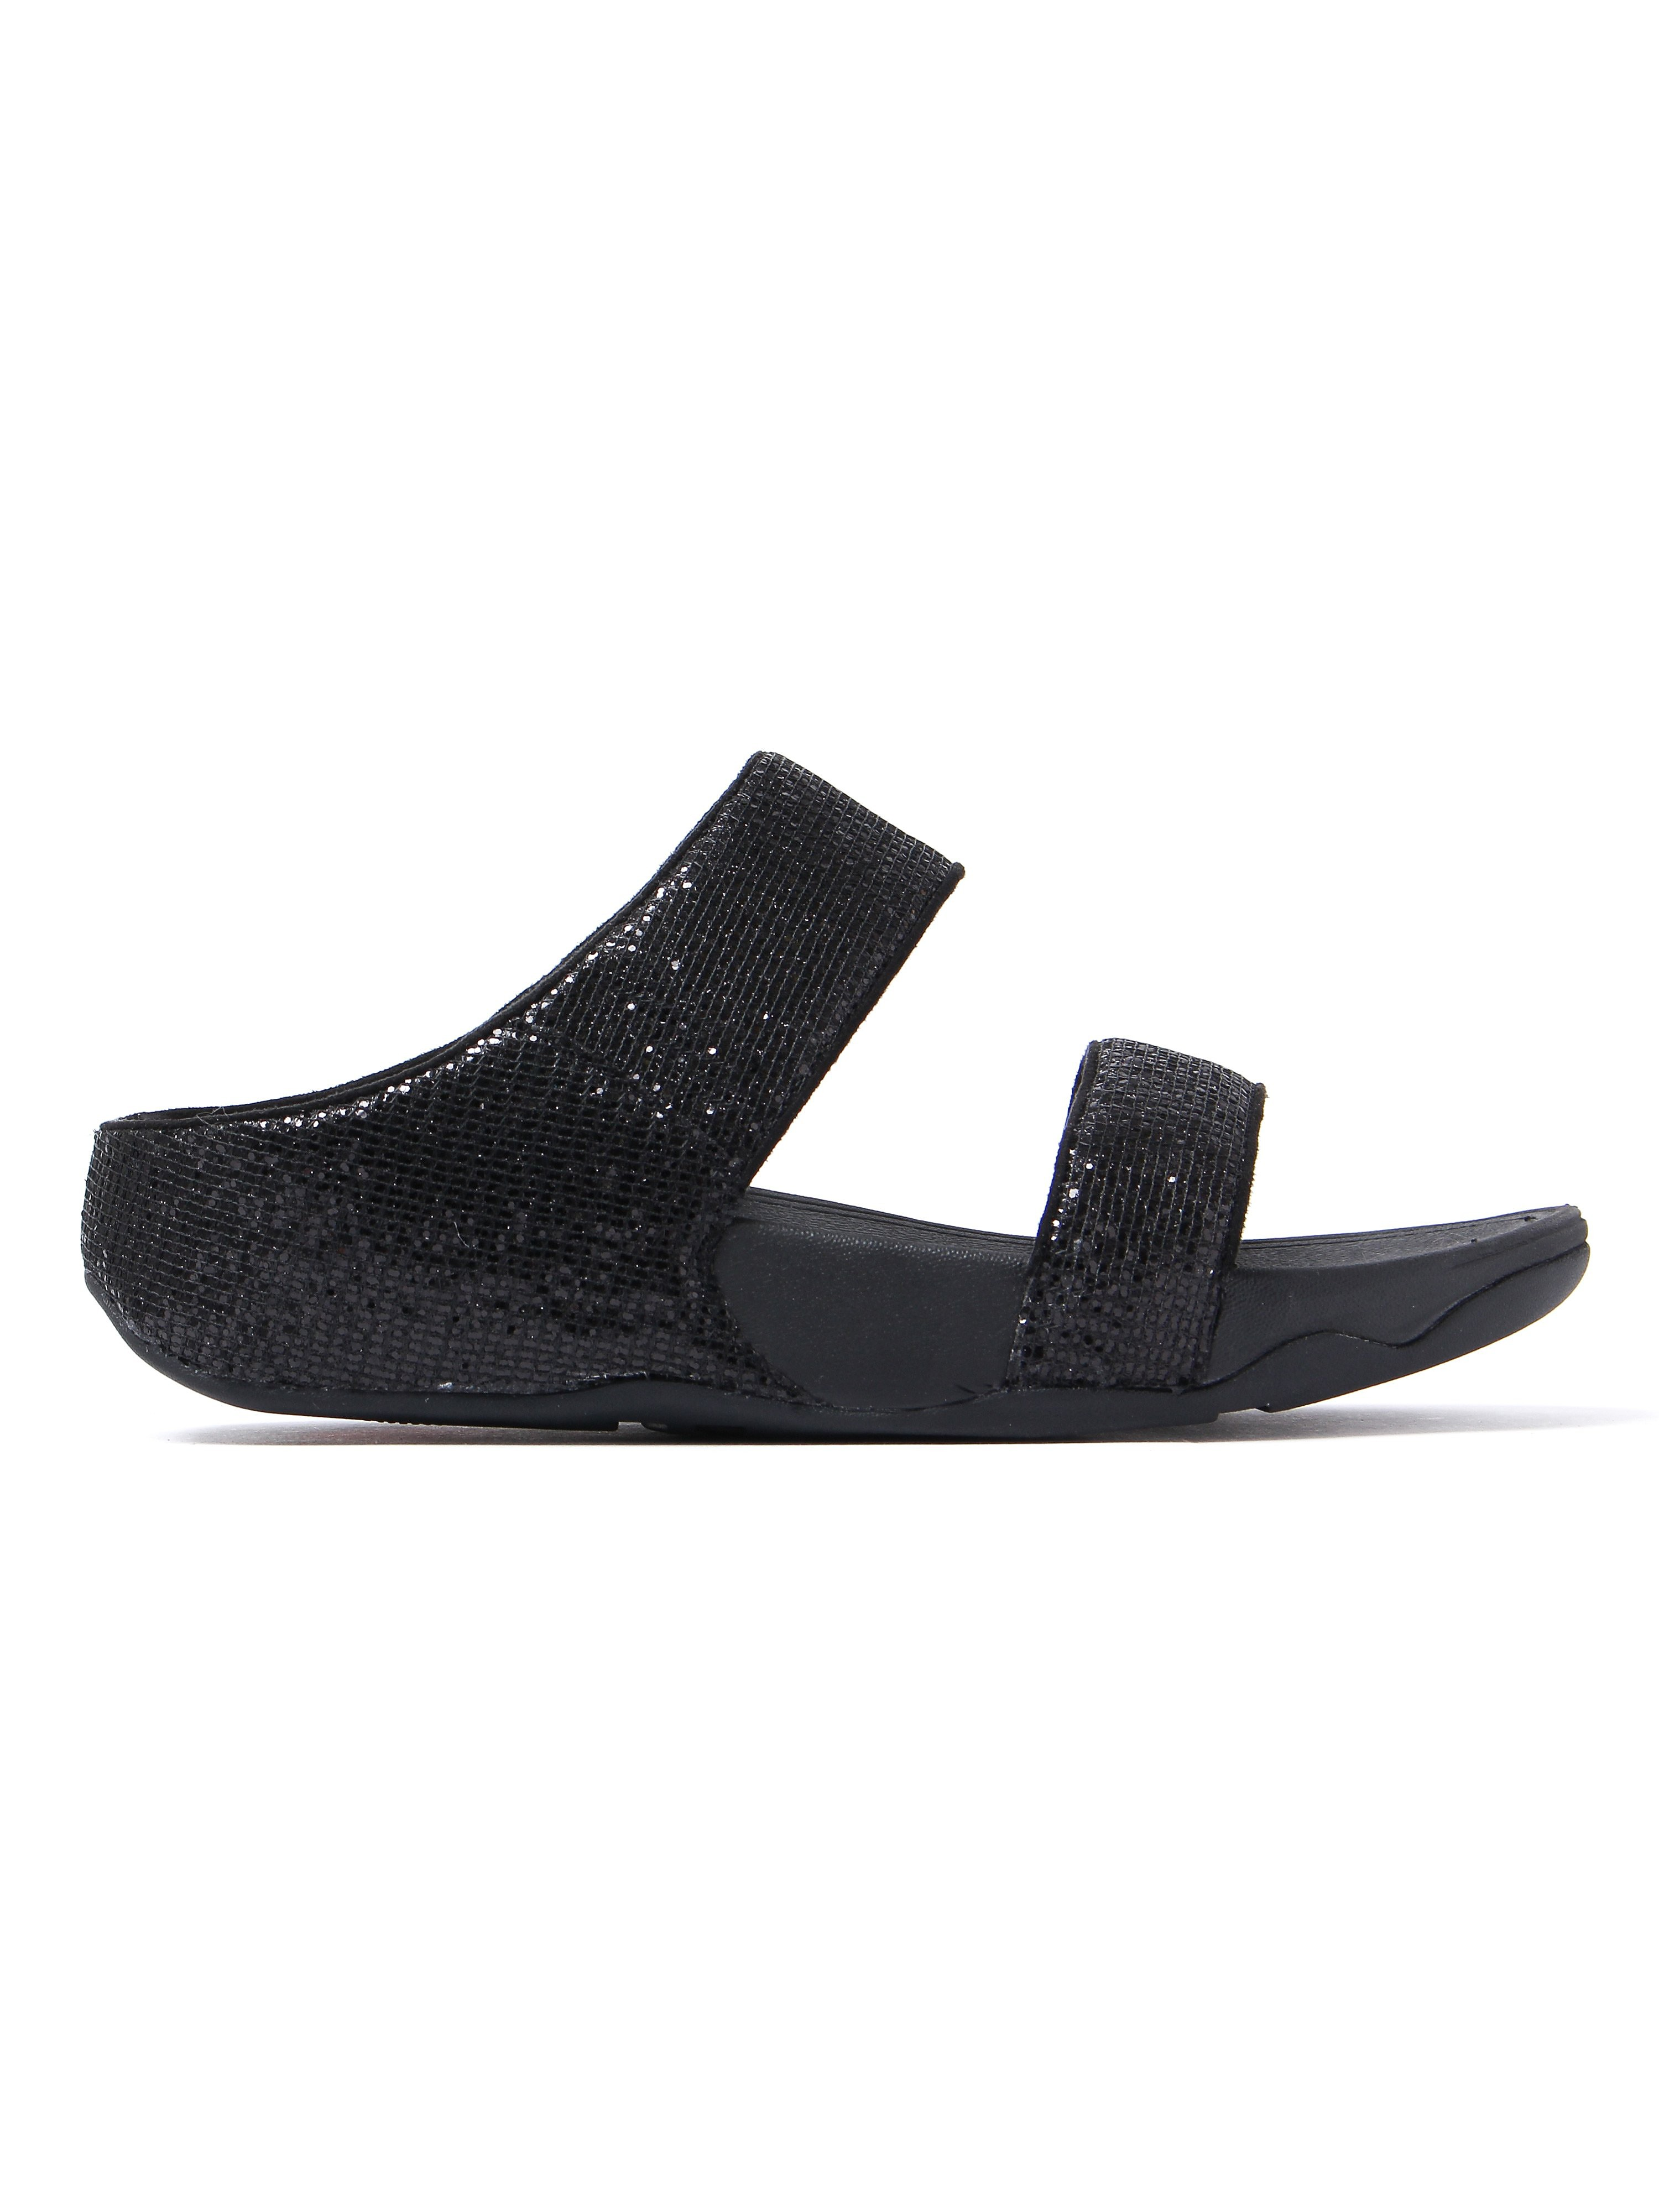 FitFlop Women's SuperGlitz Slide Sandals - Black